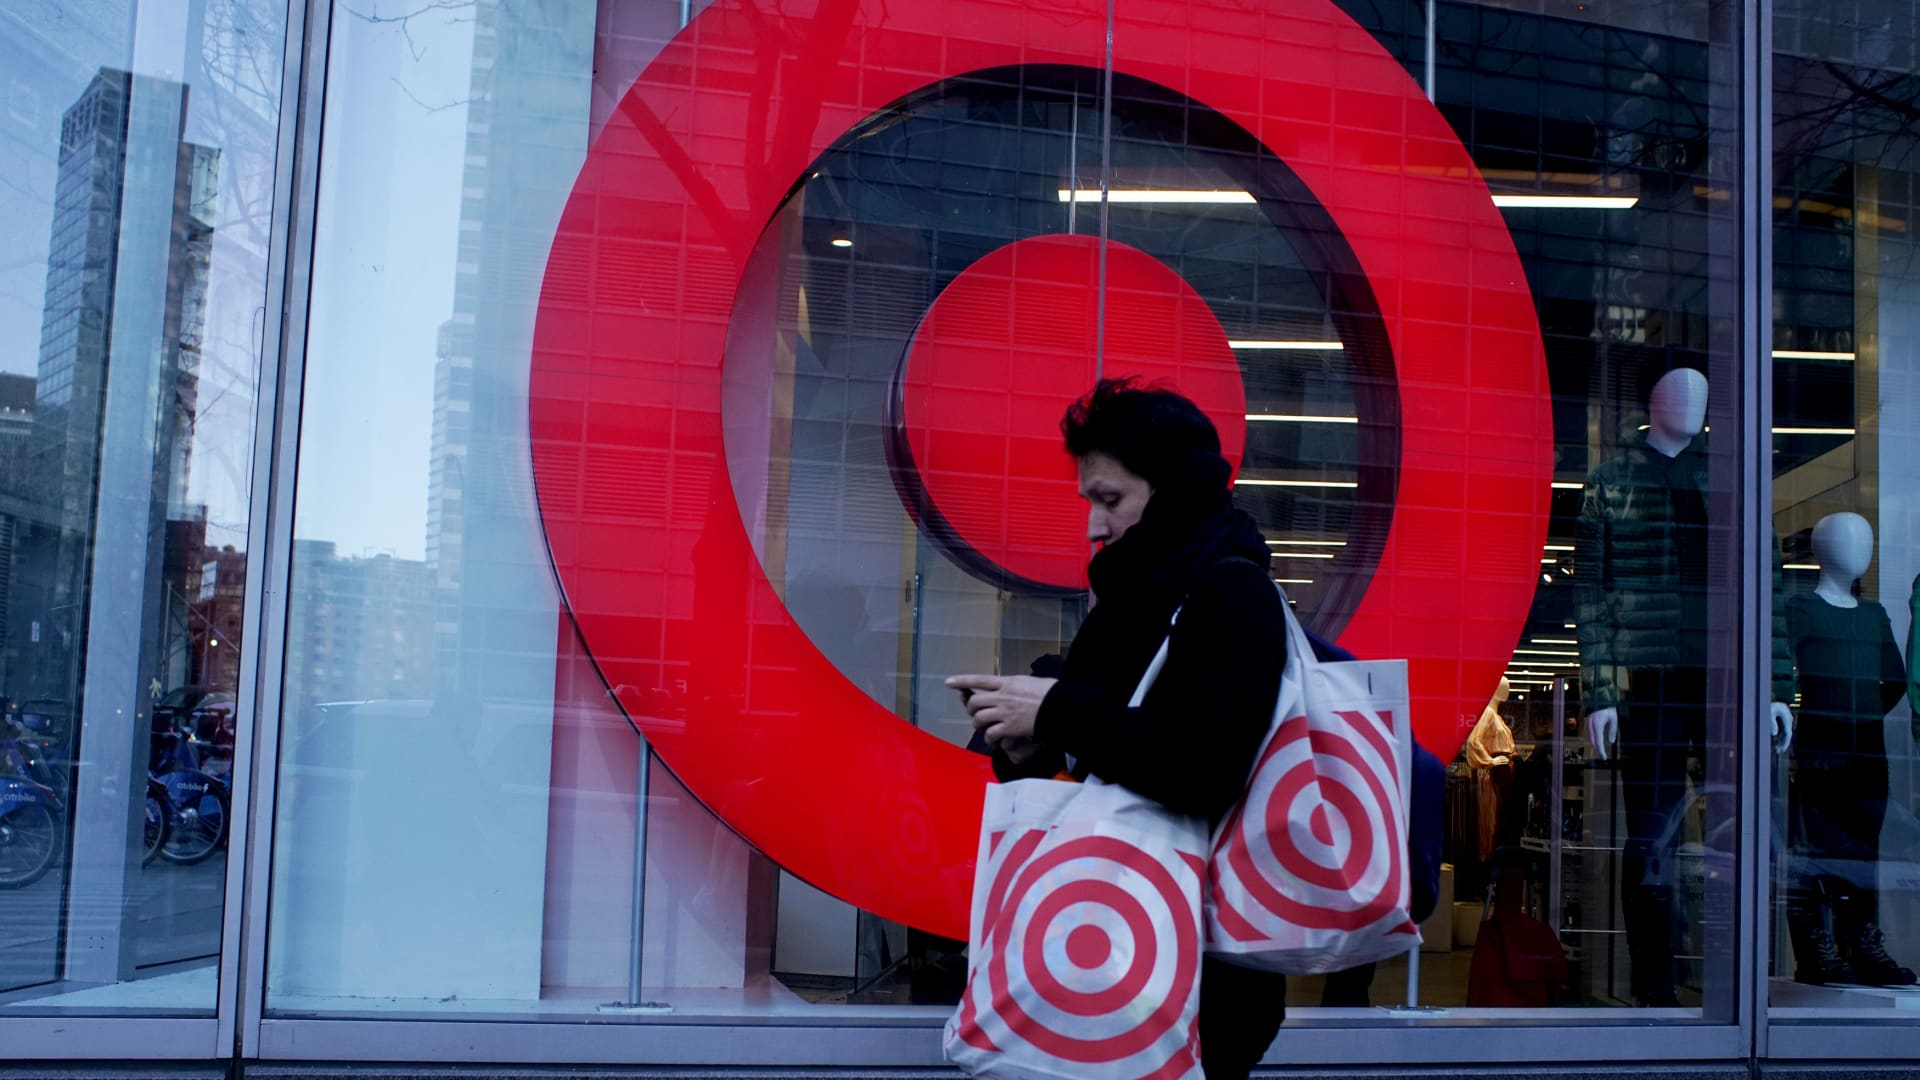 A woman exits Target store on March 02, 2021 in New York.